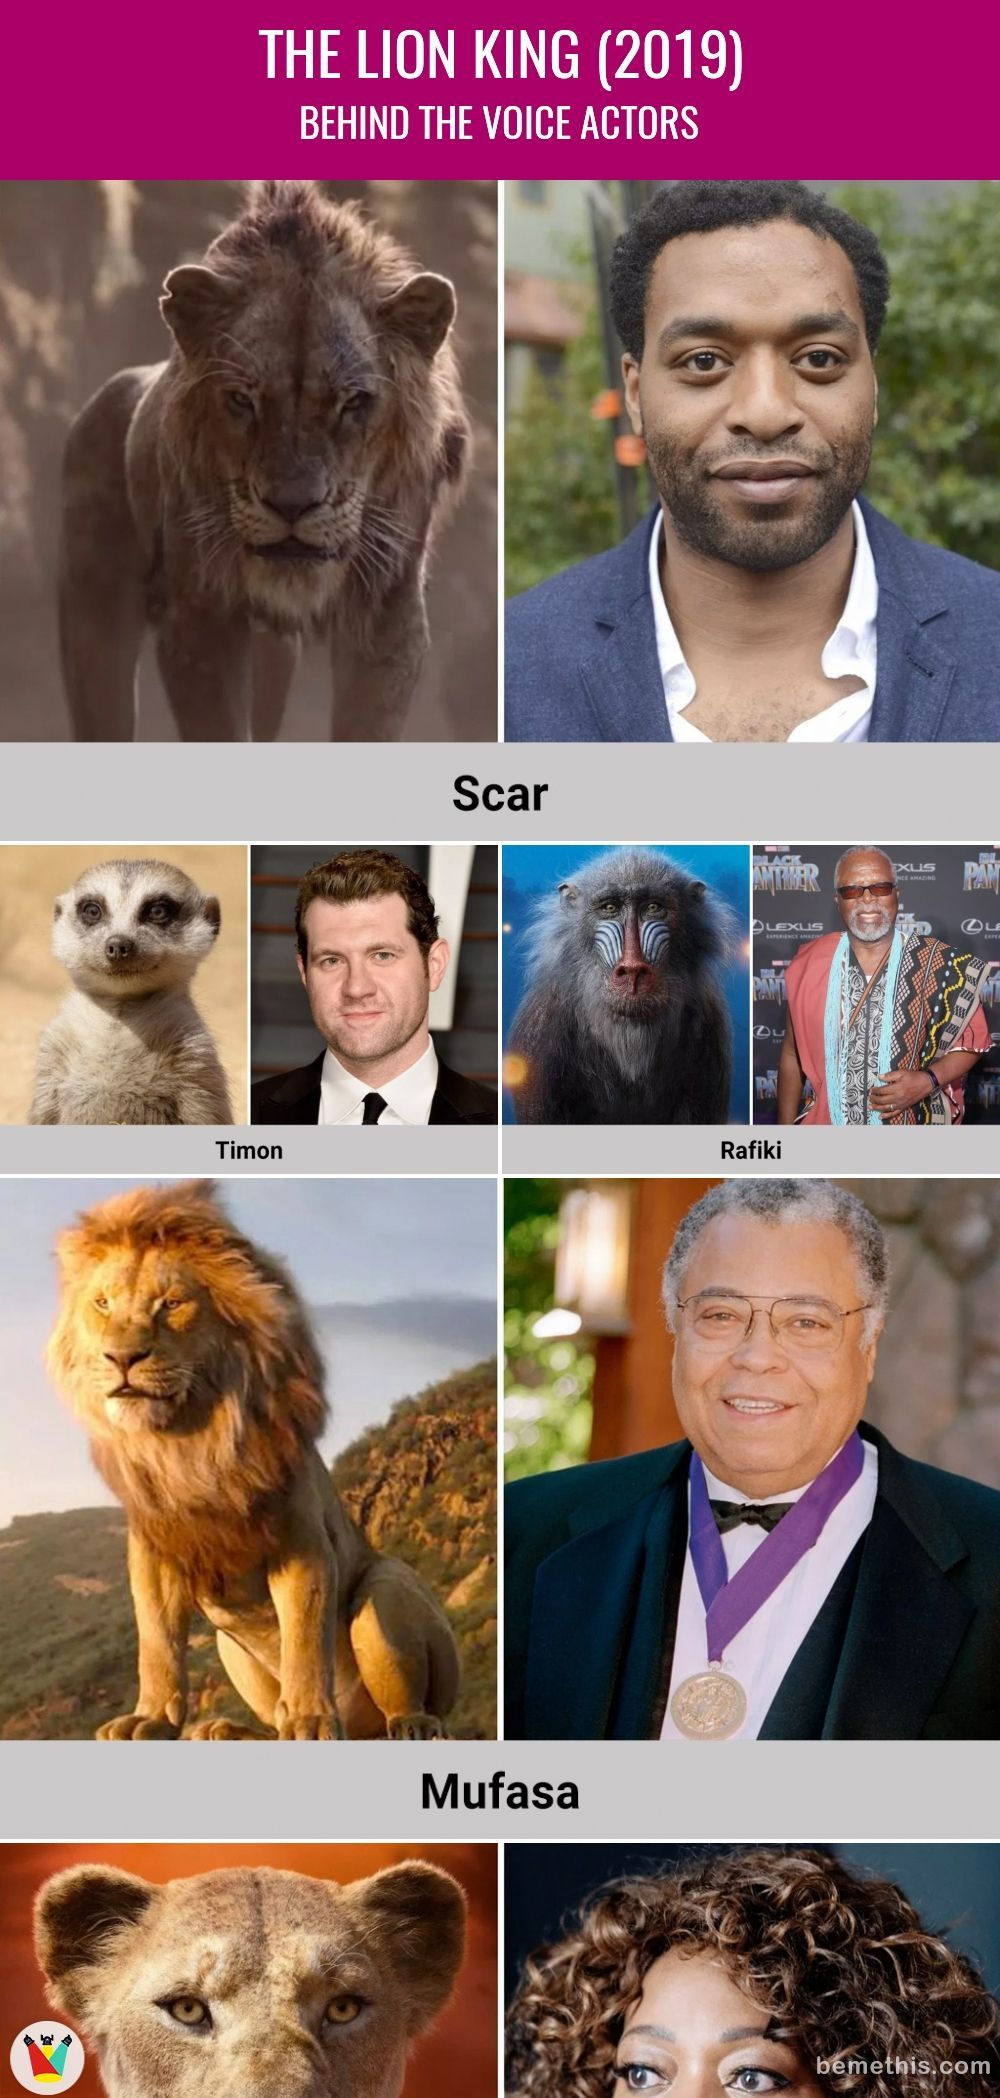 The Lion King 2019 Behind The Voice Actors Daily